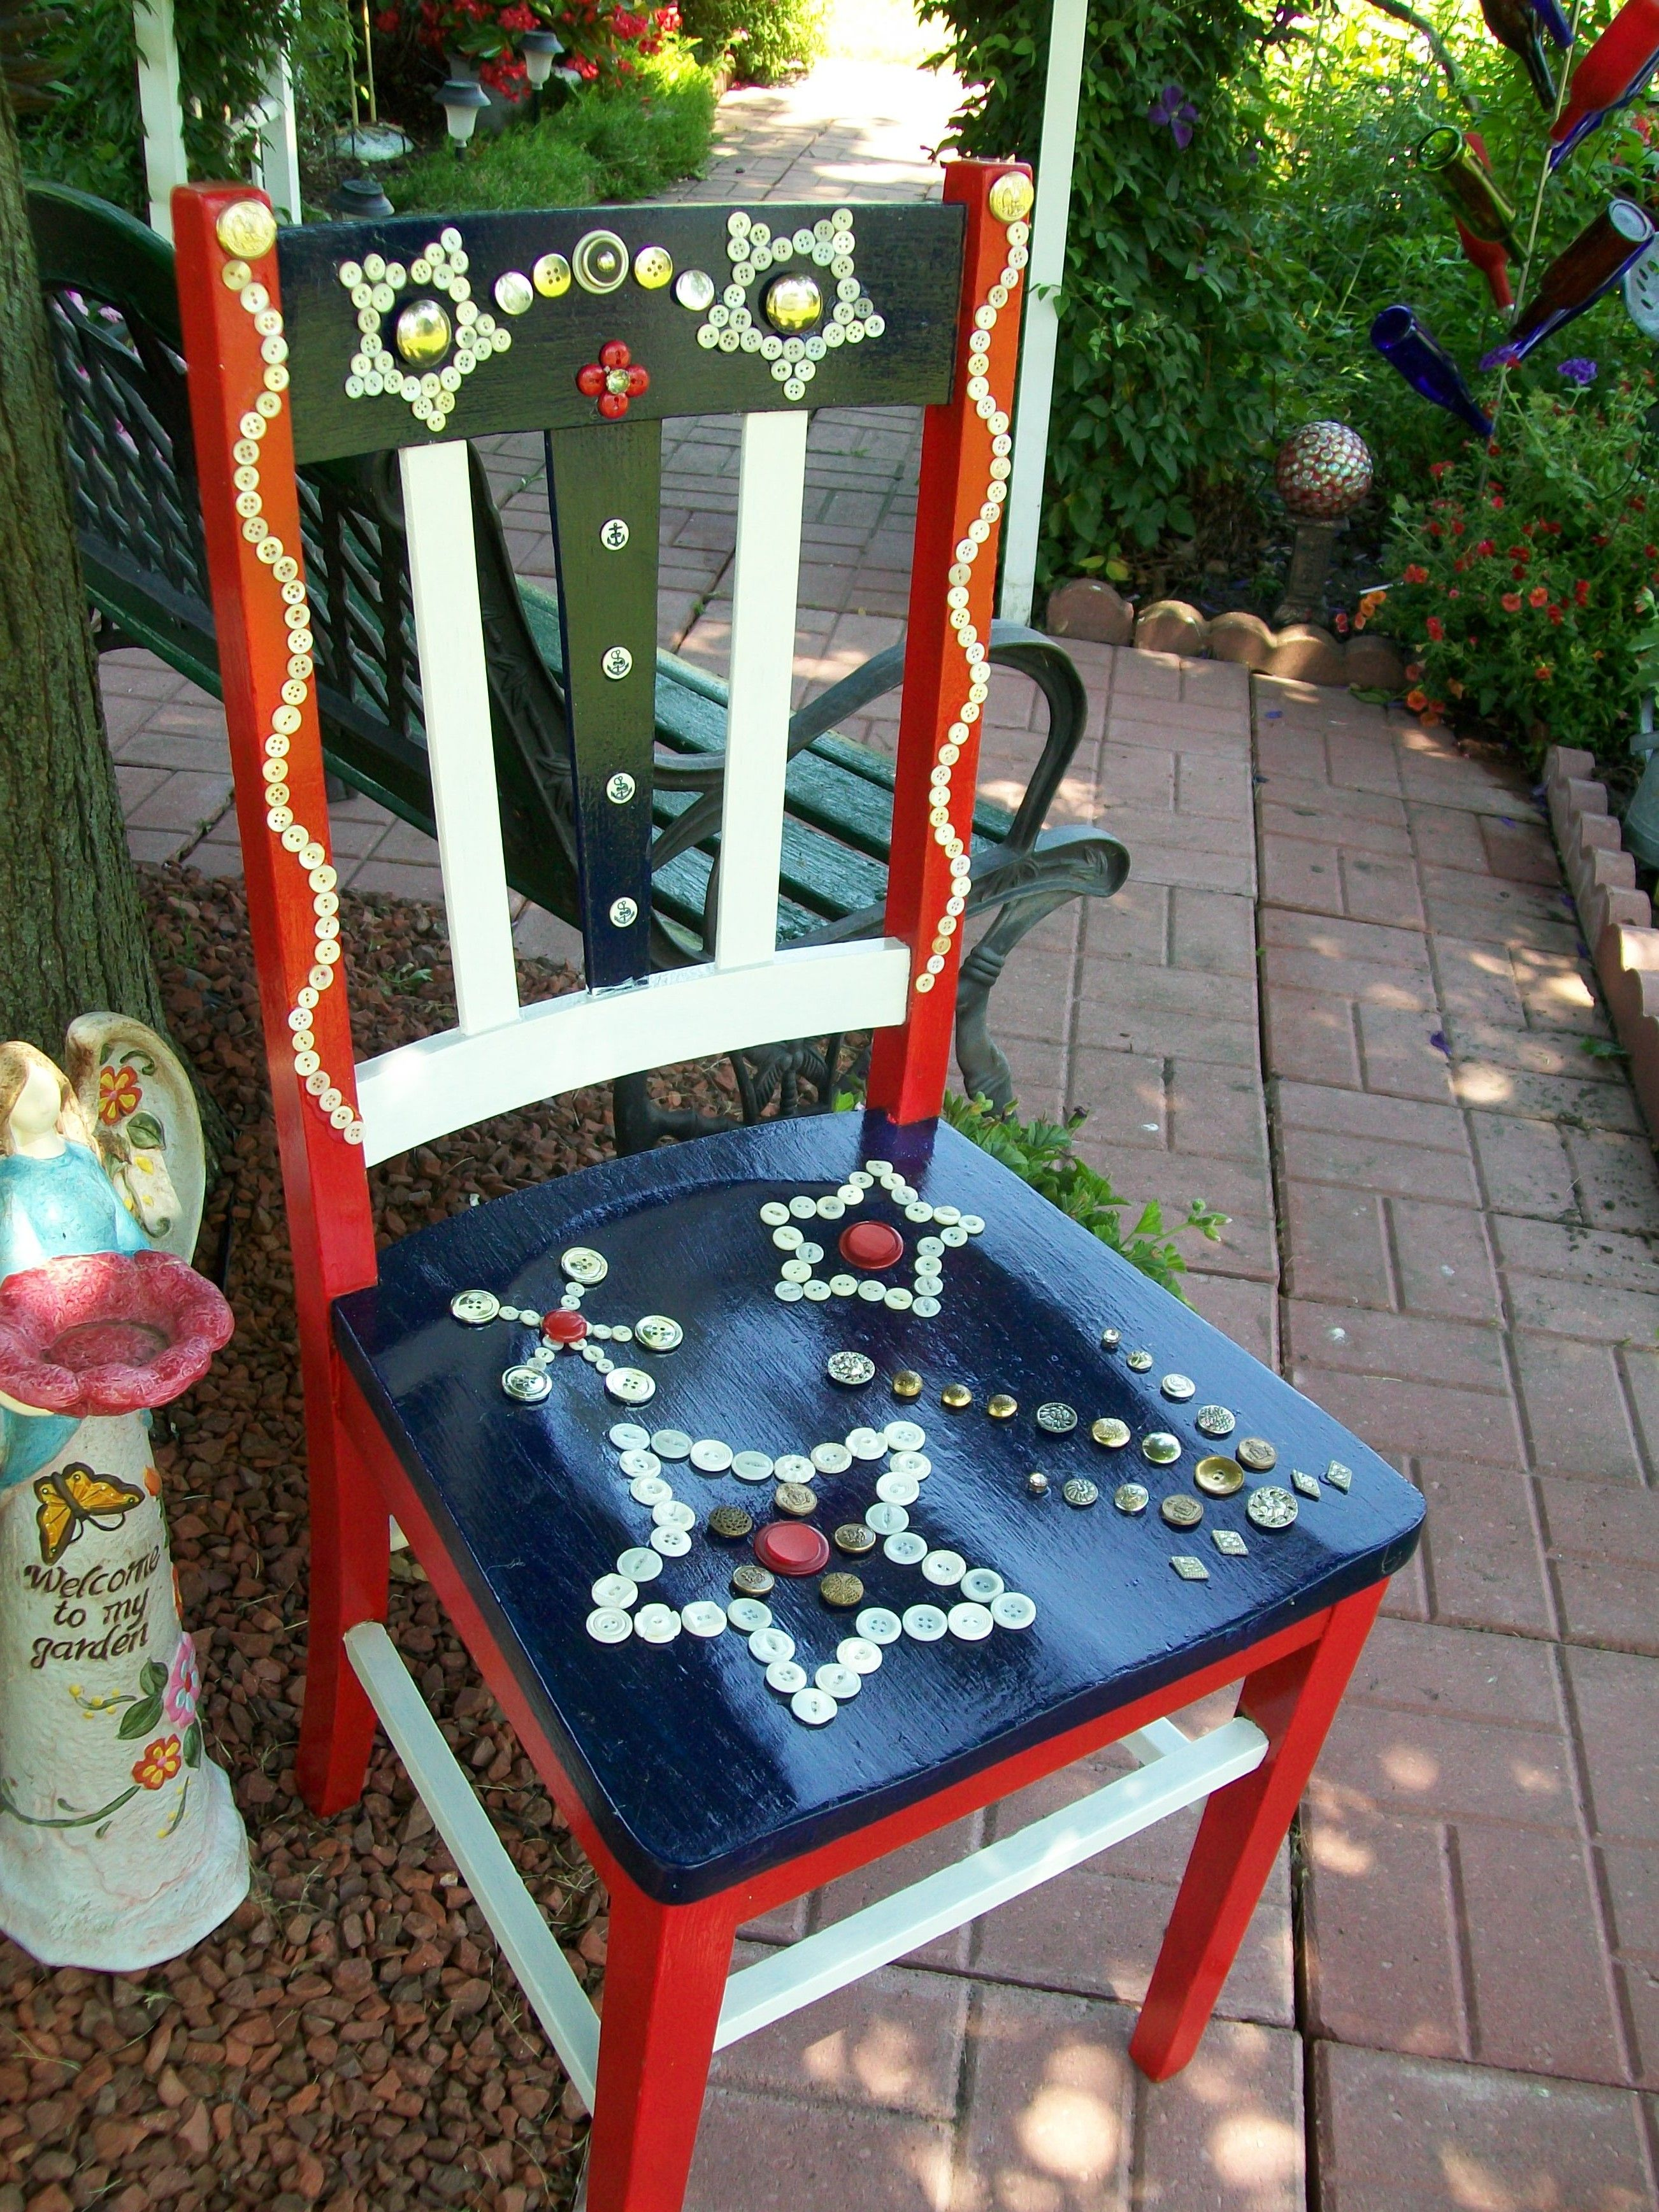 Yard Art   Red  white  blue   paint old chair  Design with buttonsYard Art   Red  white  blue   paint old chair  Design with buttons  . Red White And Blue Painted Furniture. Home Design Ideas